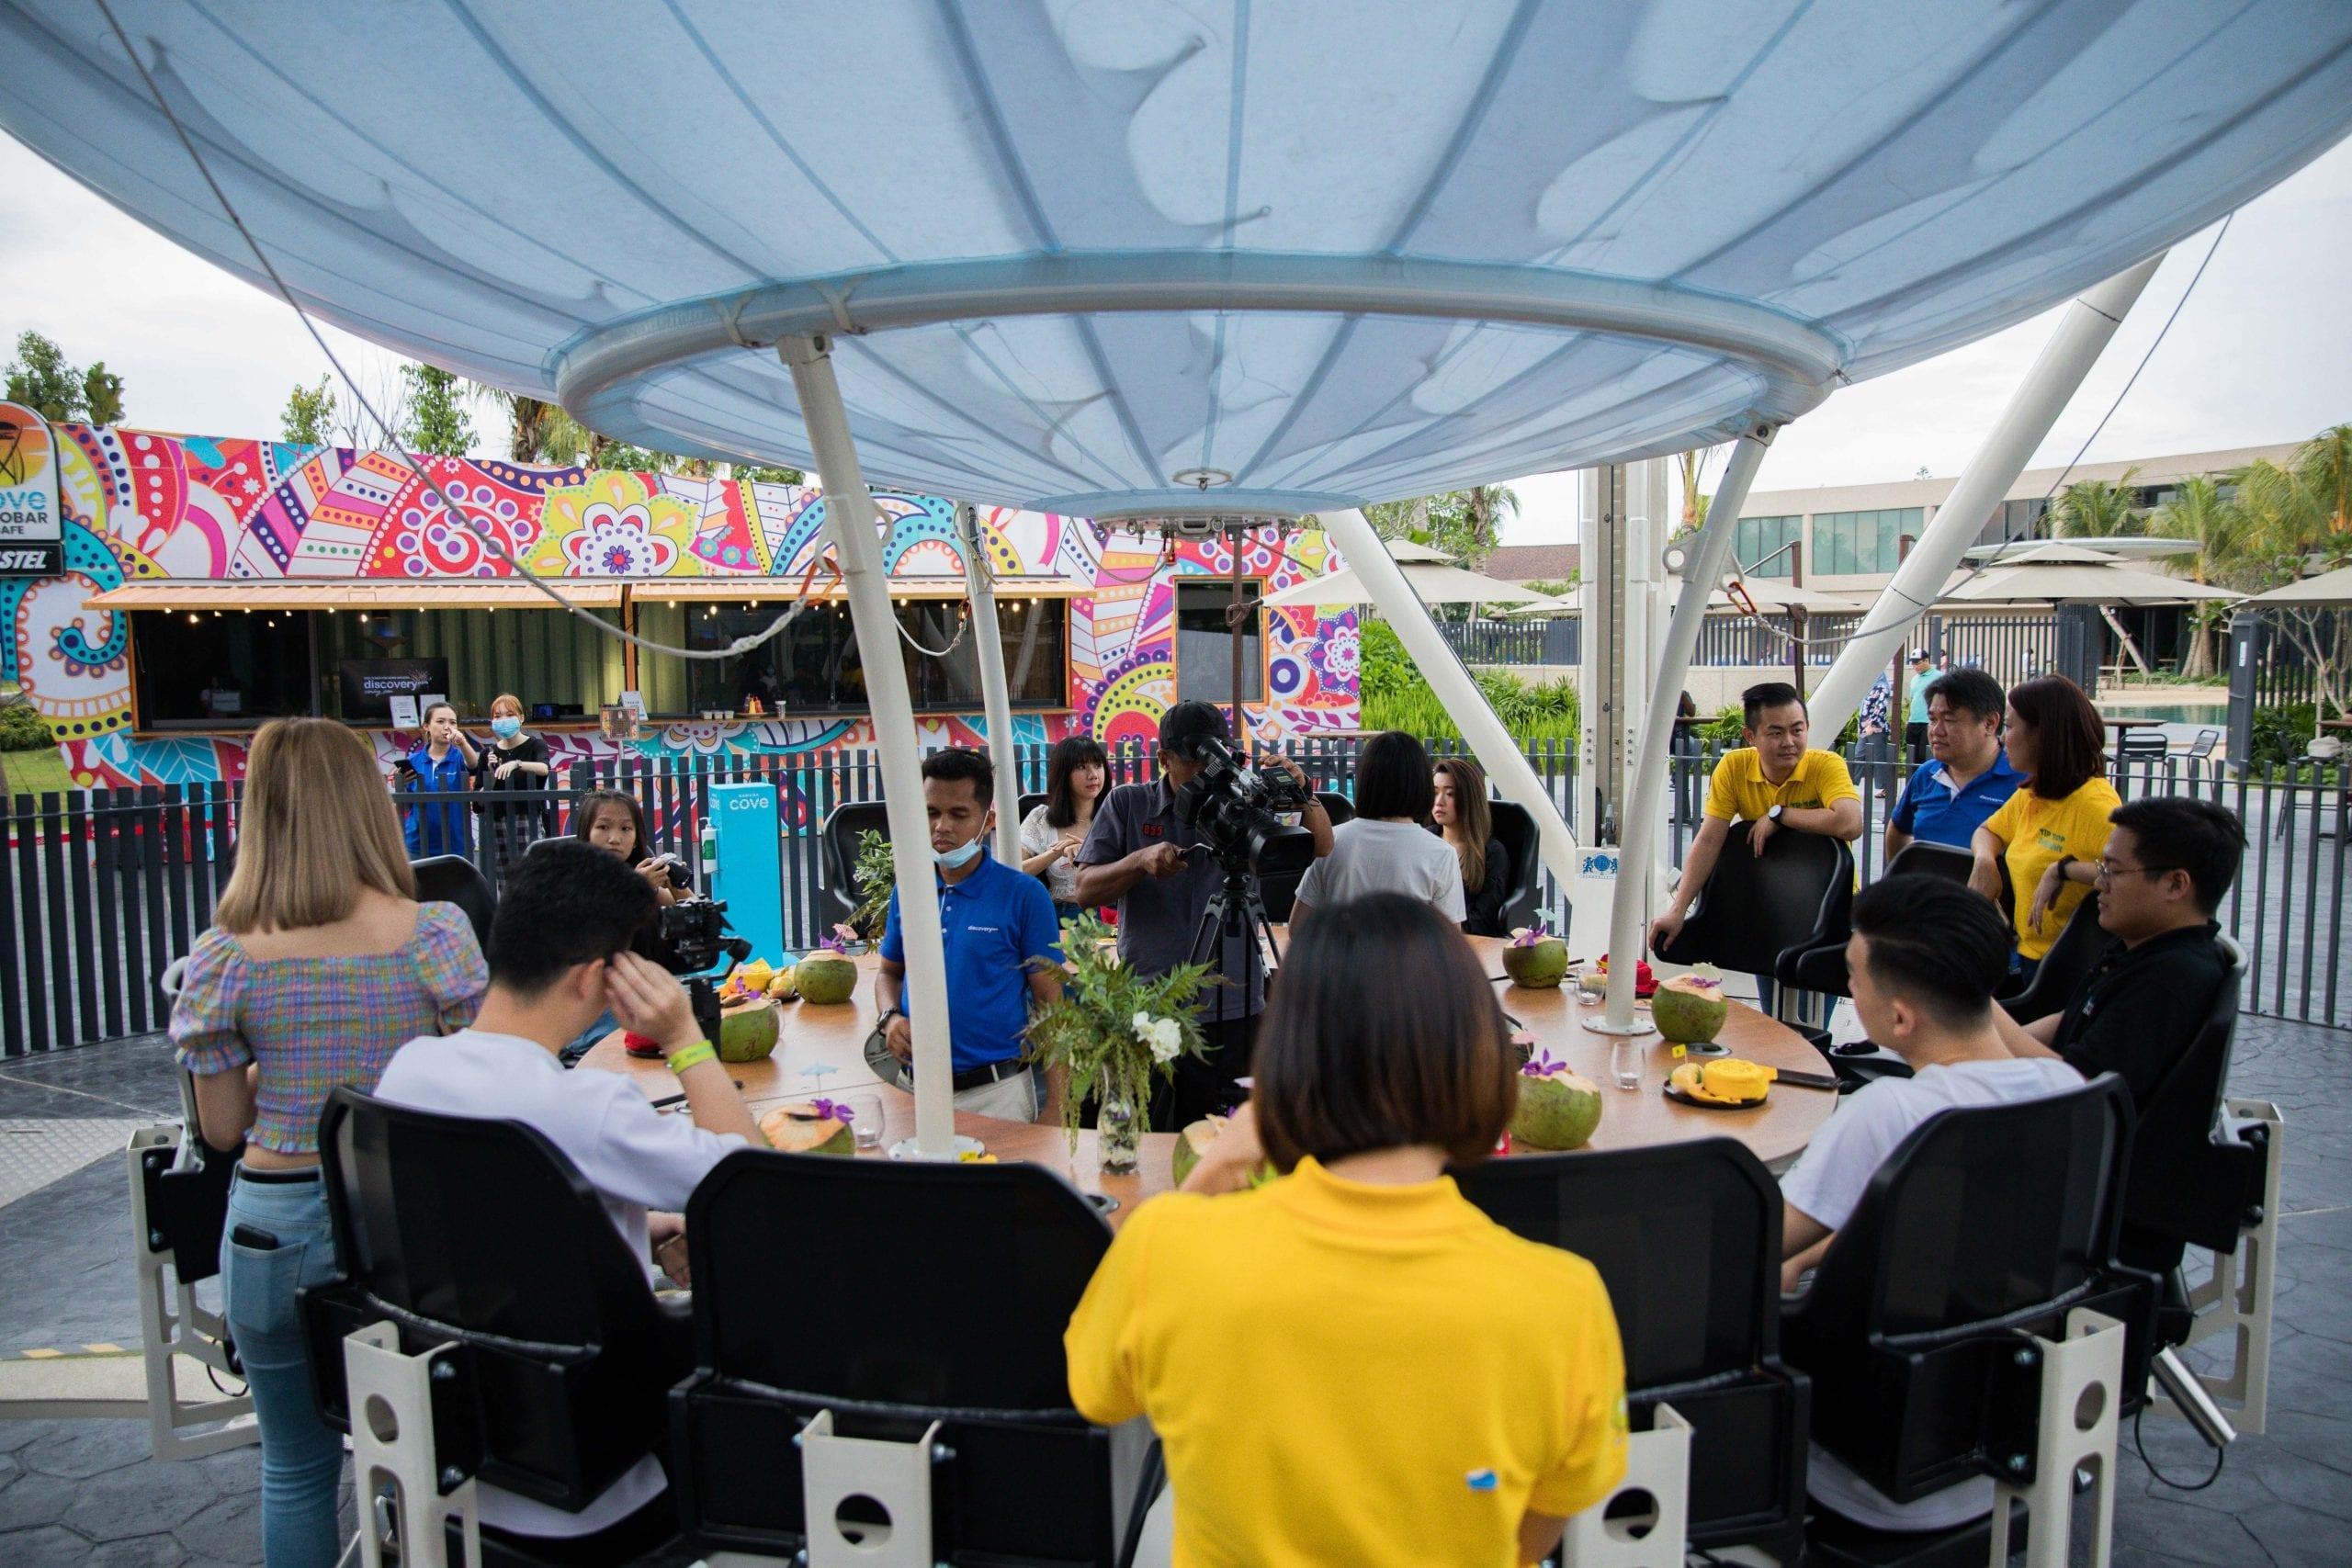 Dining In The Sky | First in Southeast Asia - Durian in the Sky | Musang King | D24 | Fresh Durian | Durian Ice Cream | Durian Mochi | Durian Crepe Cake | Durian Cheesecake | Tip Top Durian Delivery | Malaysia Top Fresh Durian Online Delivery